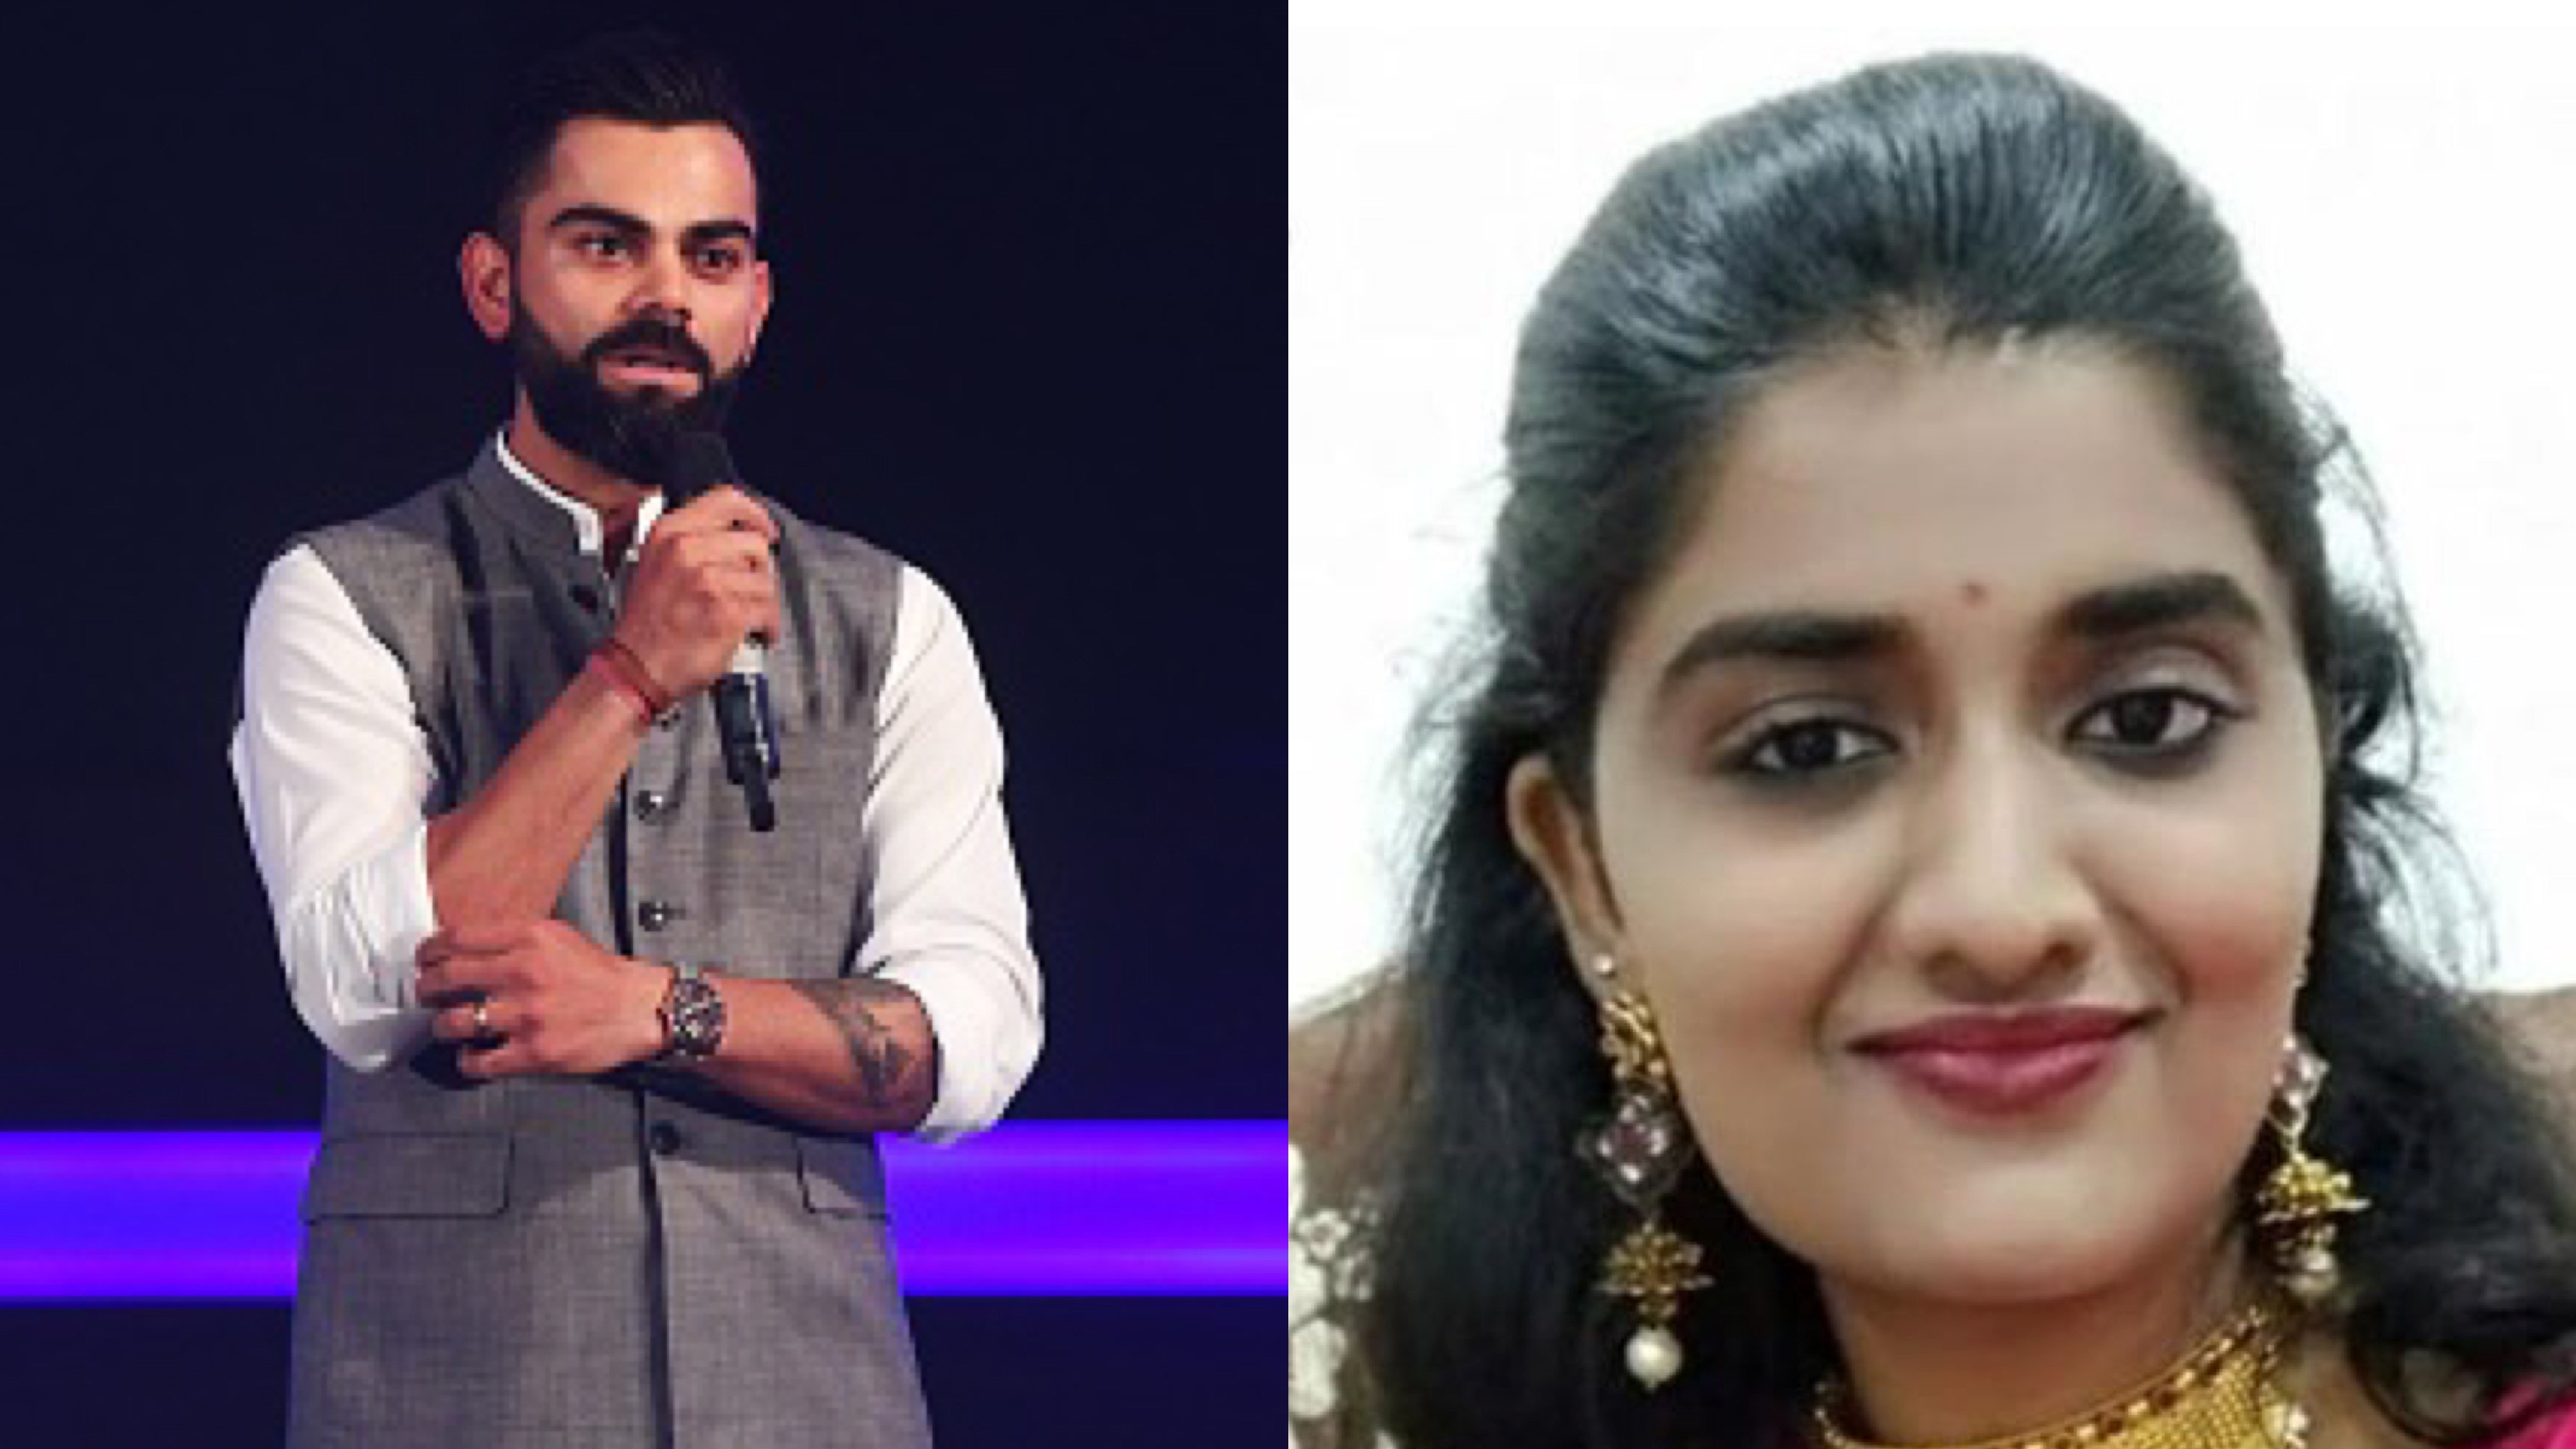 Virat Kohli angered by Priyanka Reddy's rape-murder; asks society to take charge to put an end to such tragedies